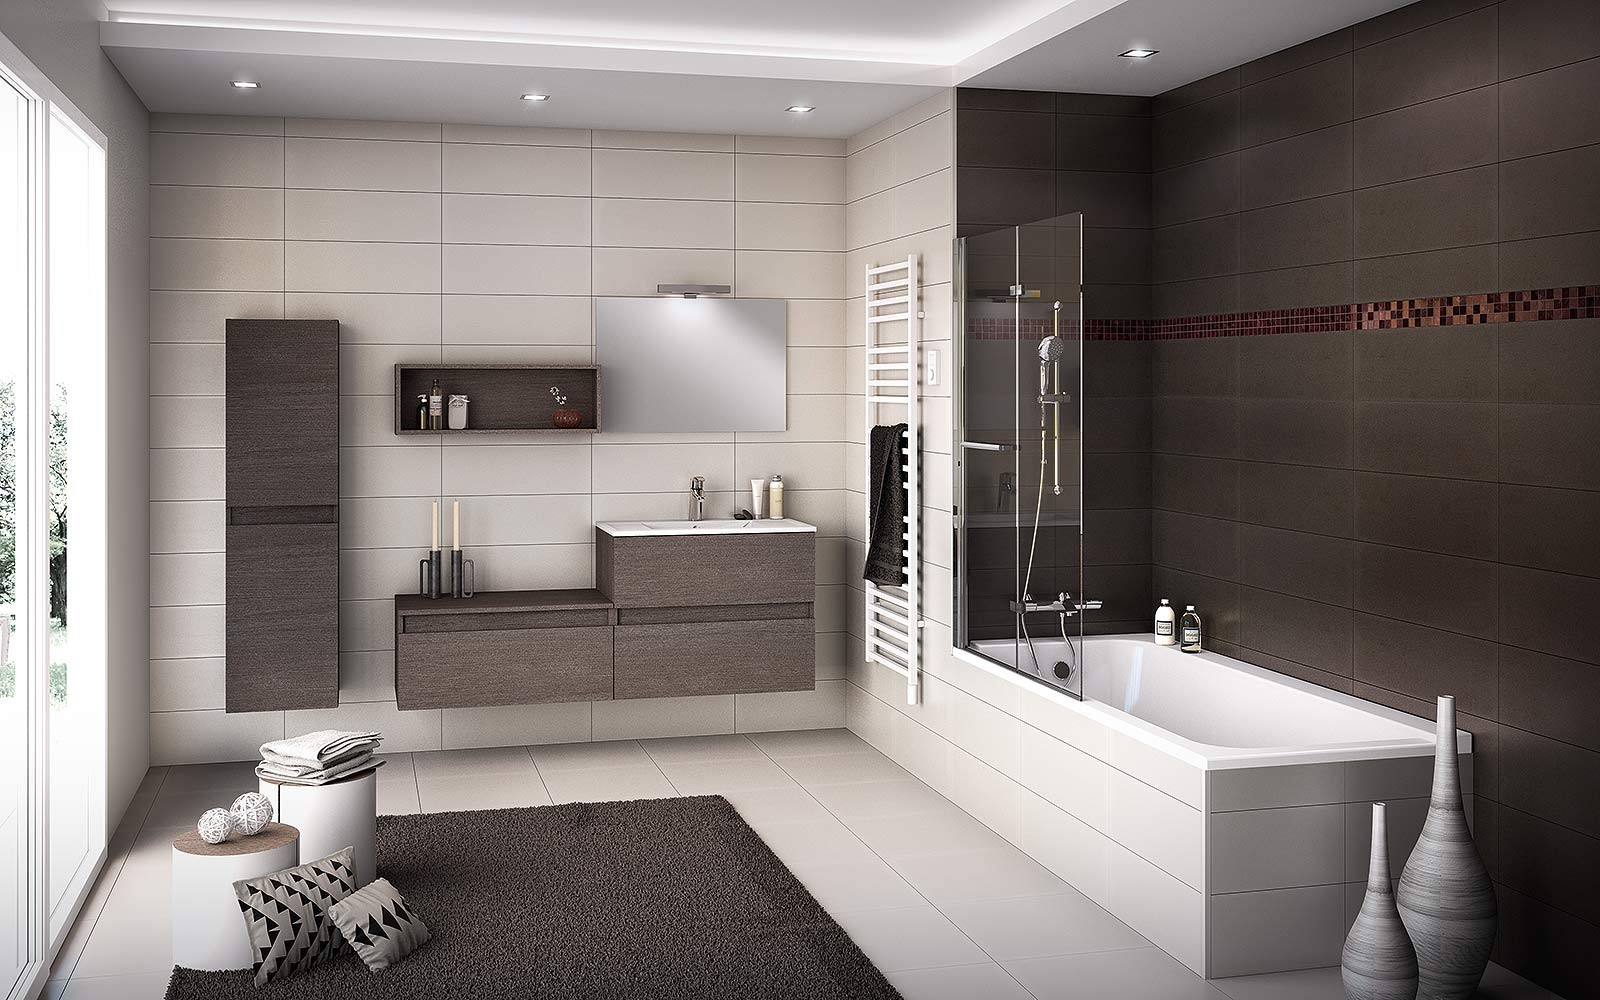 tendance carrelage salle de bain 2015 carrelage id es. Black Bedroom Furniture Sets. Home Design Ideas